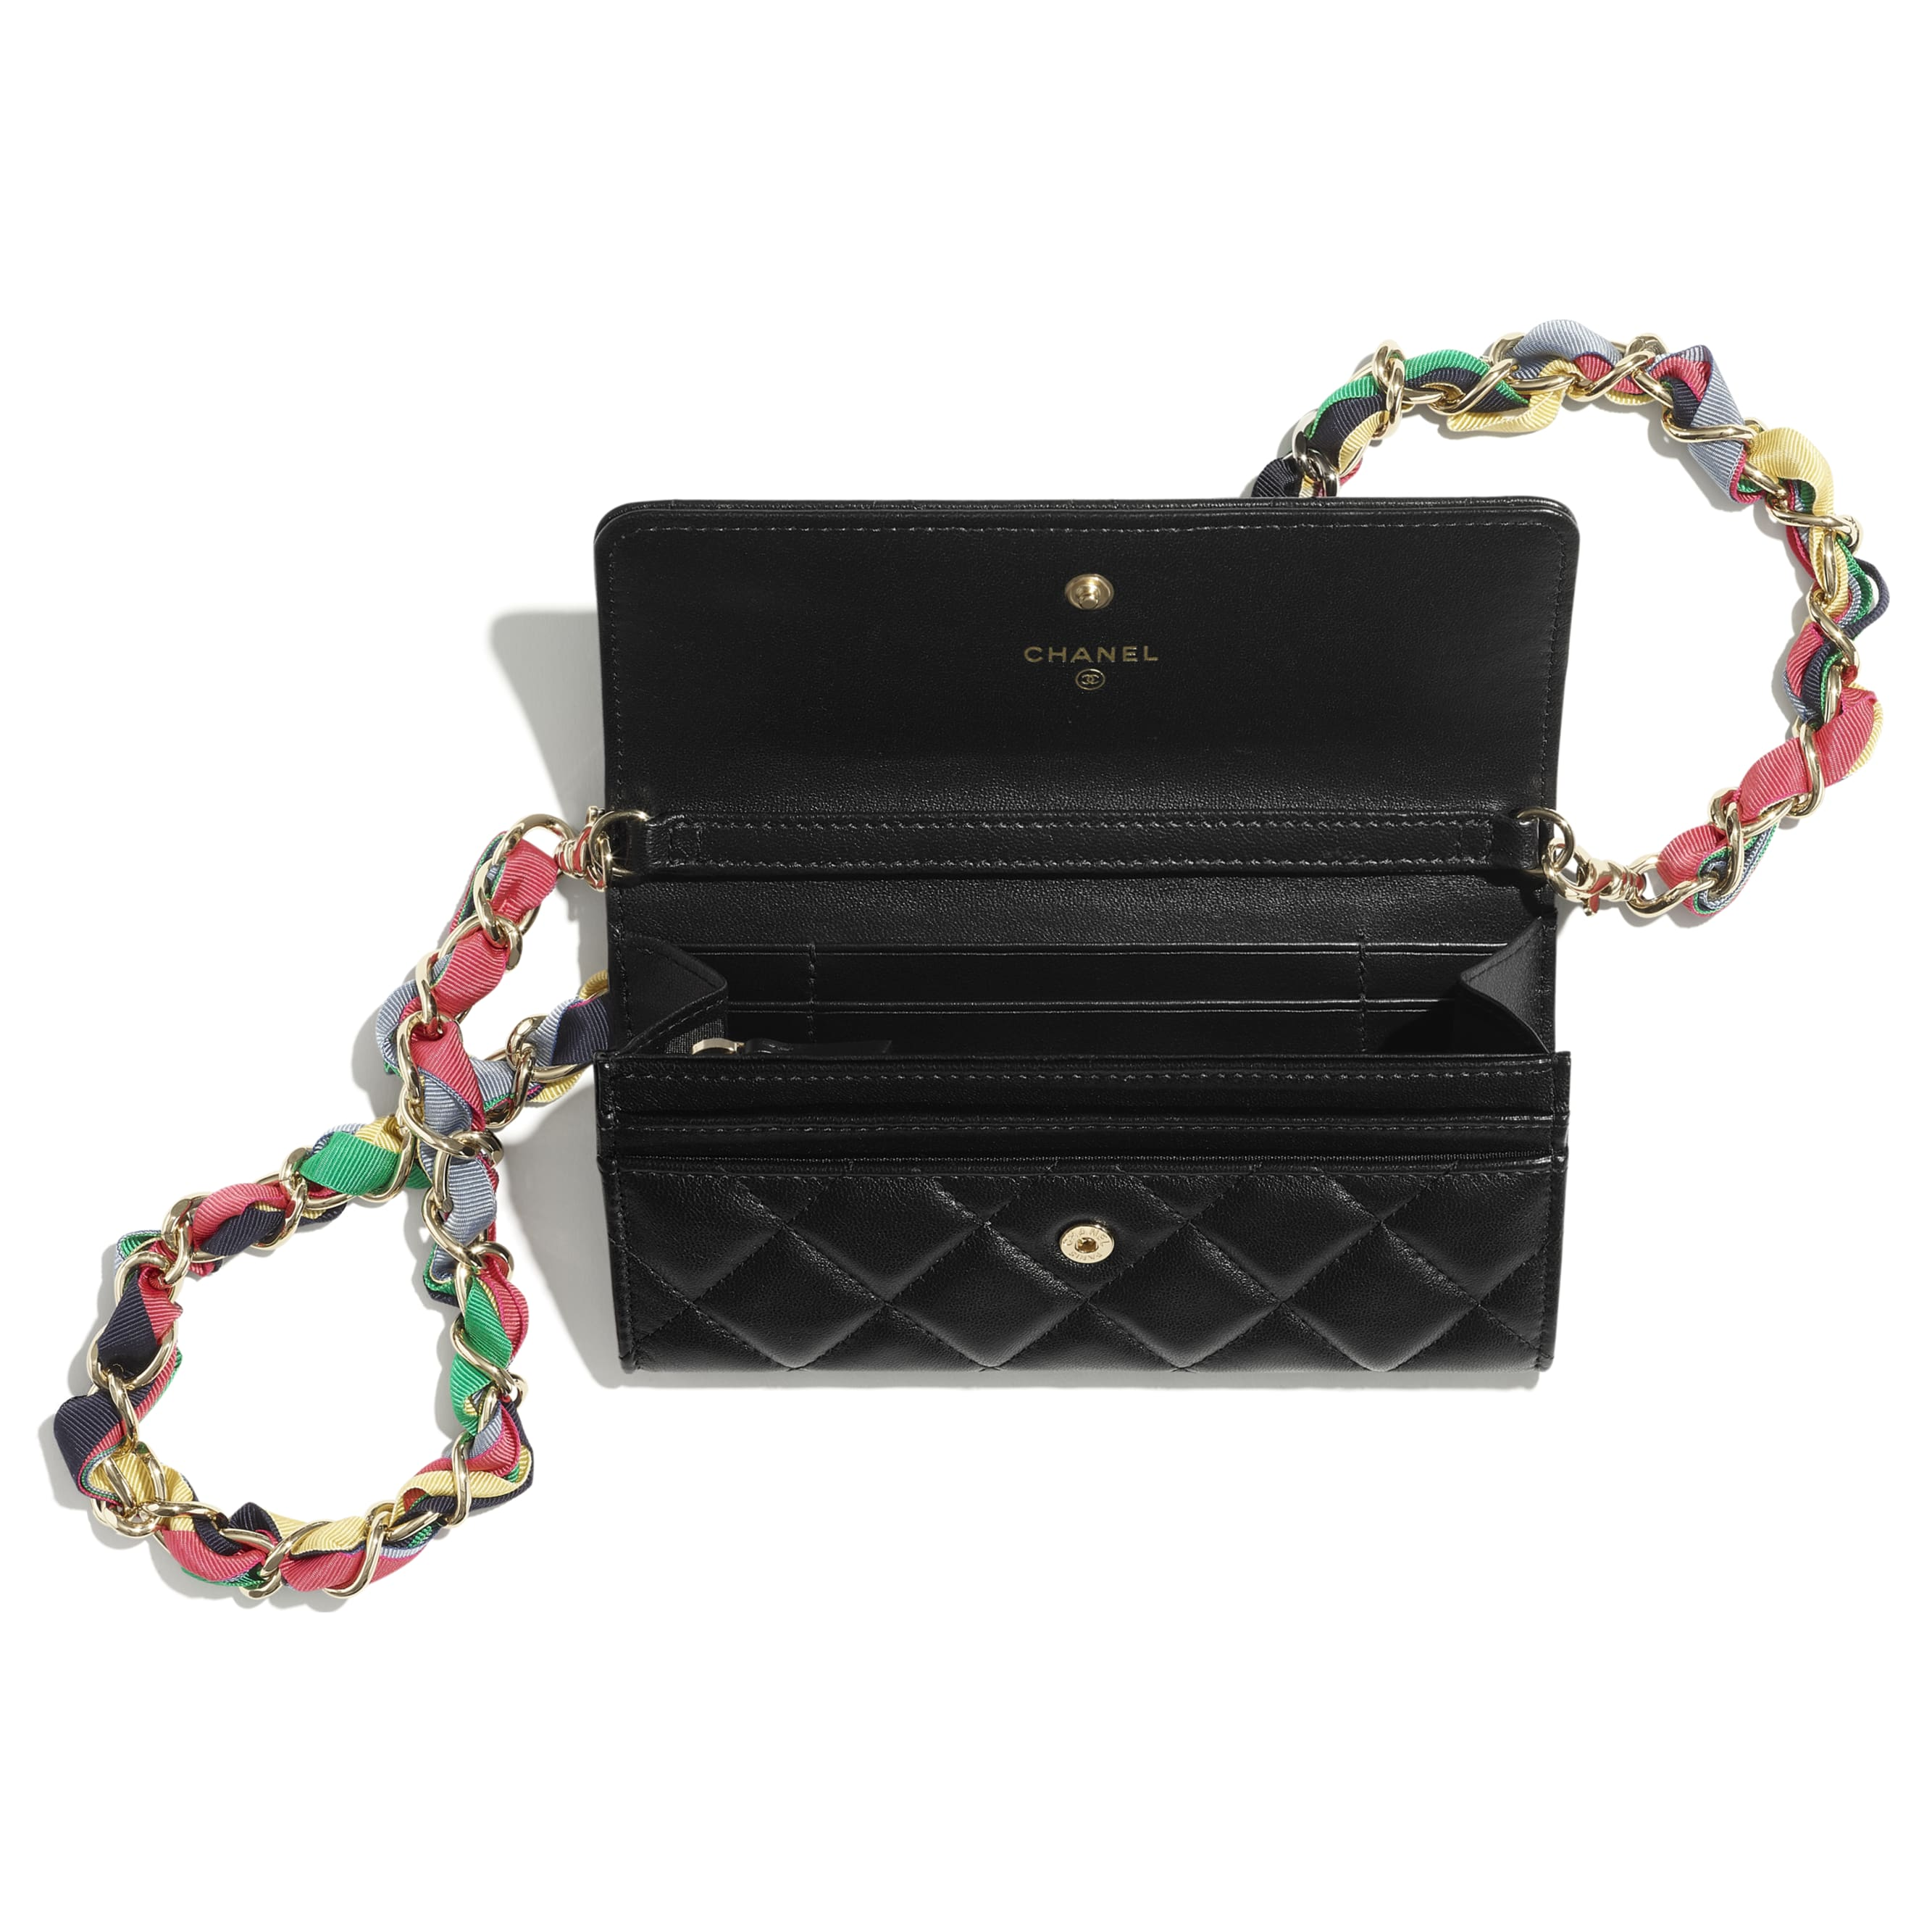 Clutch With Chain - Black - Shiny Lambskin, Ribbon & Gold-Tone Metal - CHANEL - Alternative view - see standard sized version